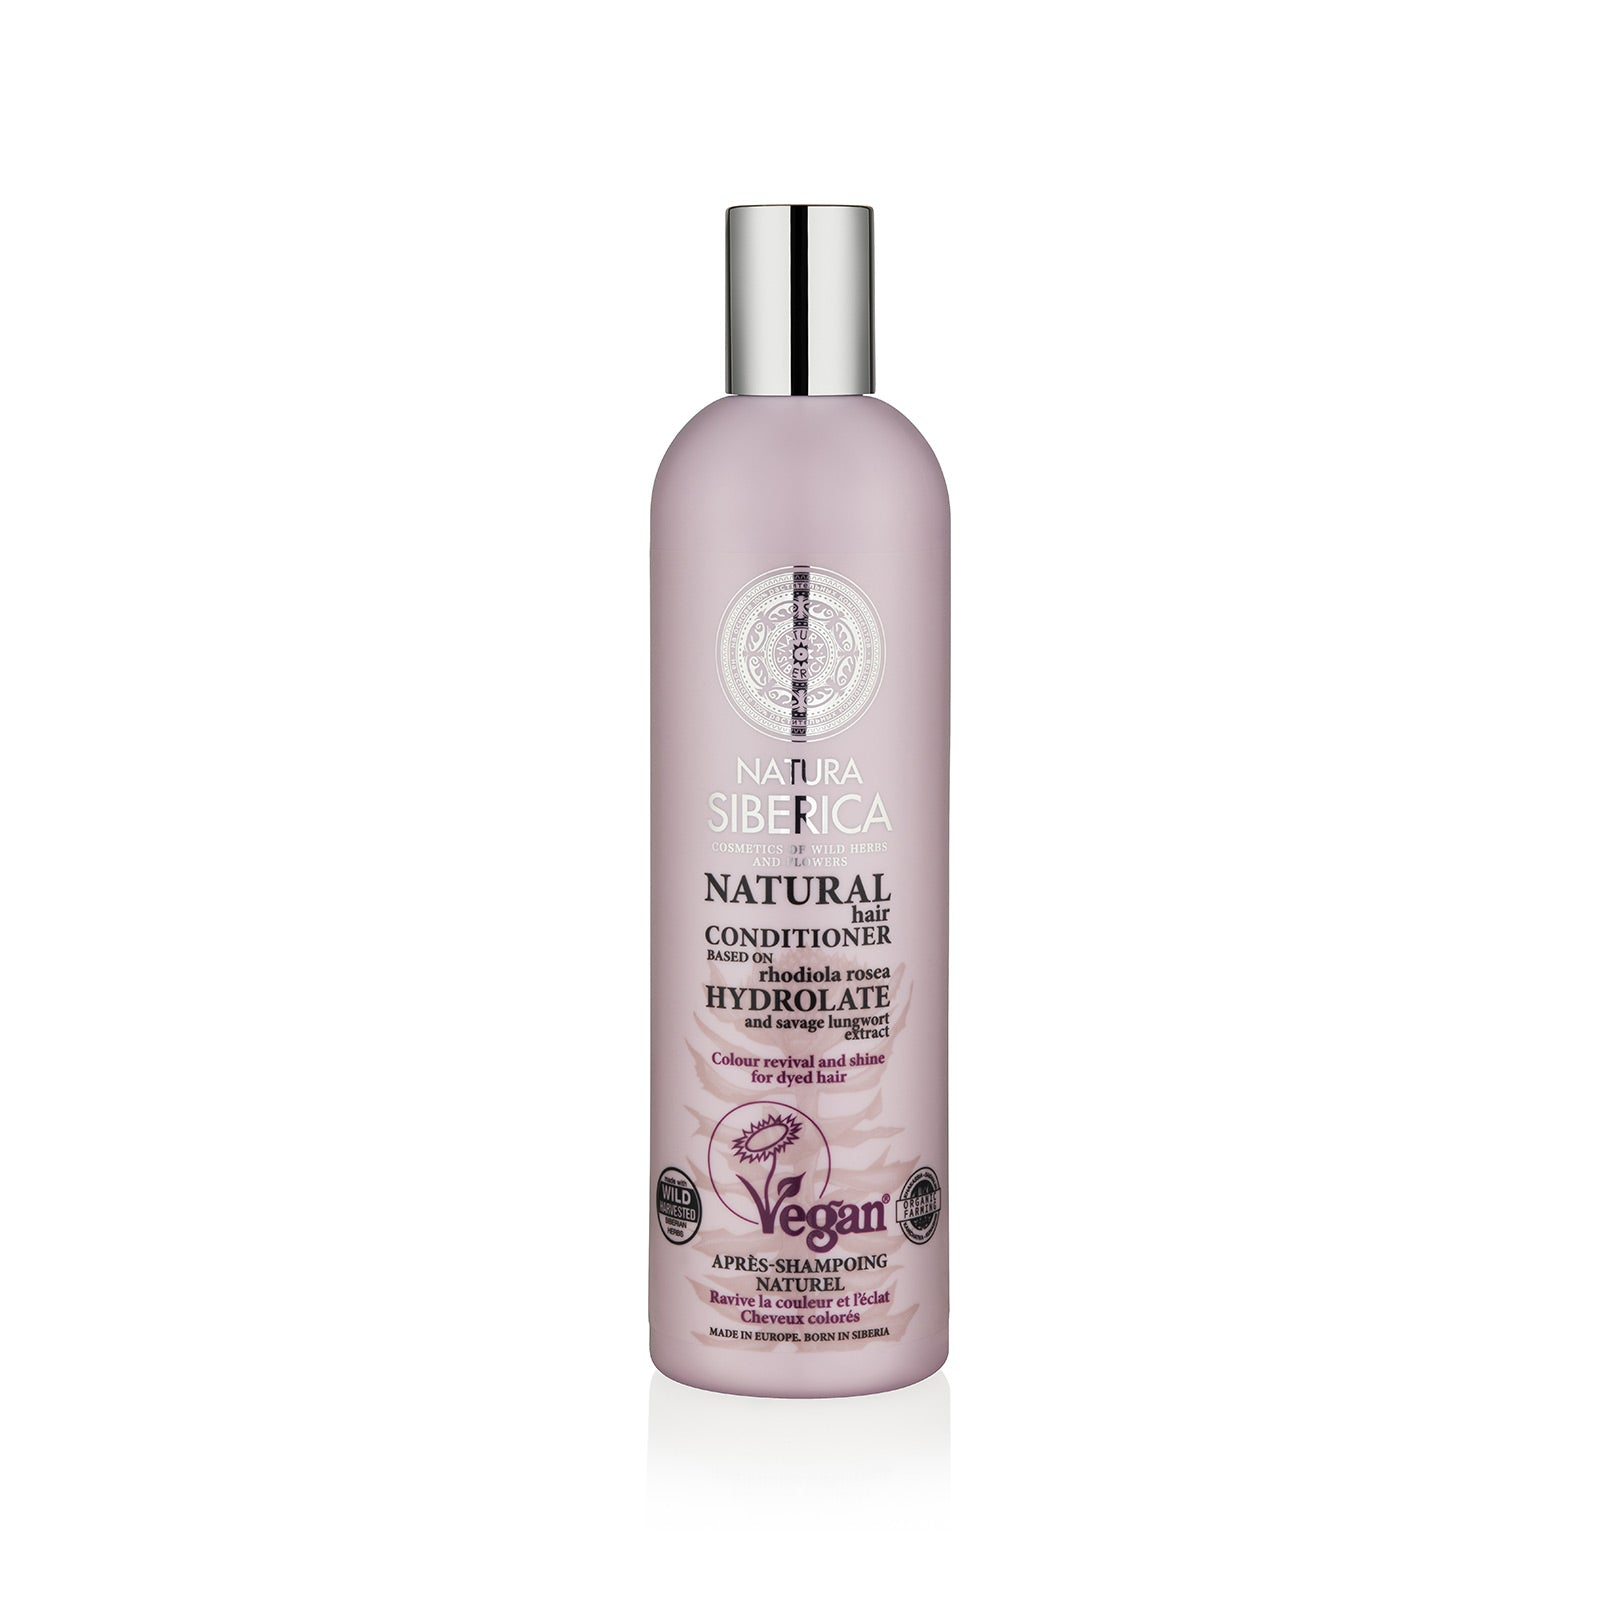 Colour Revival and Shine Conditioner. for dyed hair, 400 ml